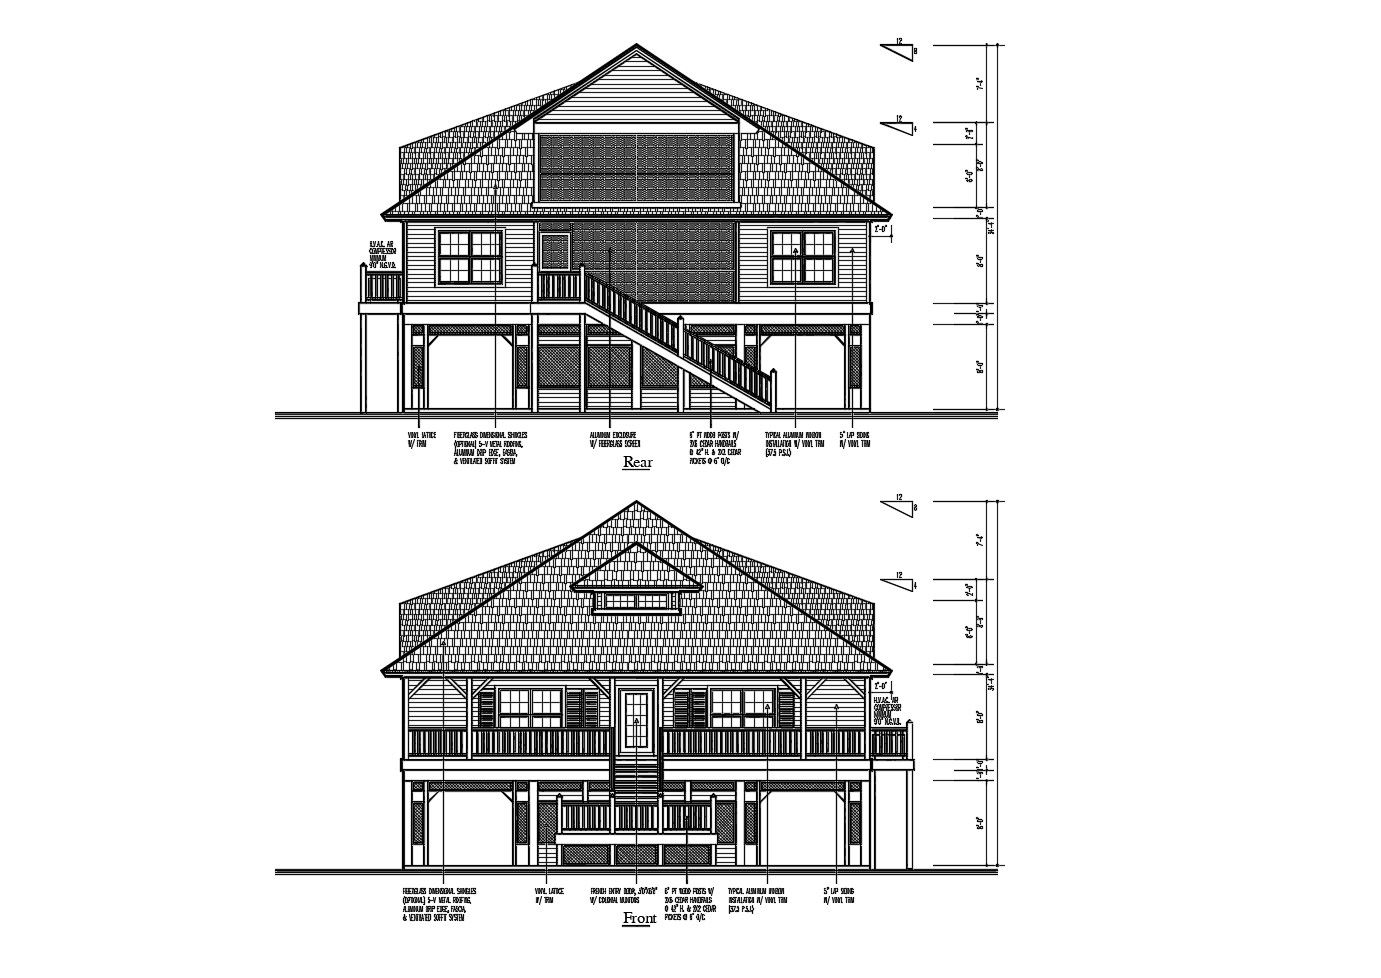 2d Design Of A House With Elevation In Autocad